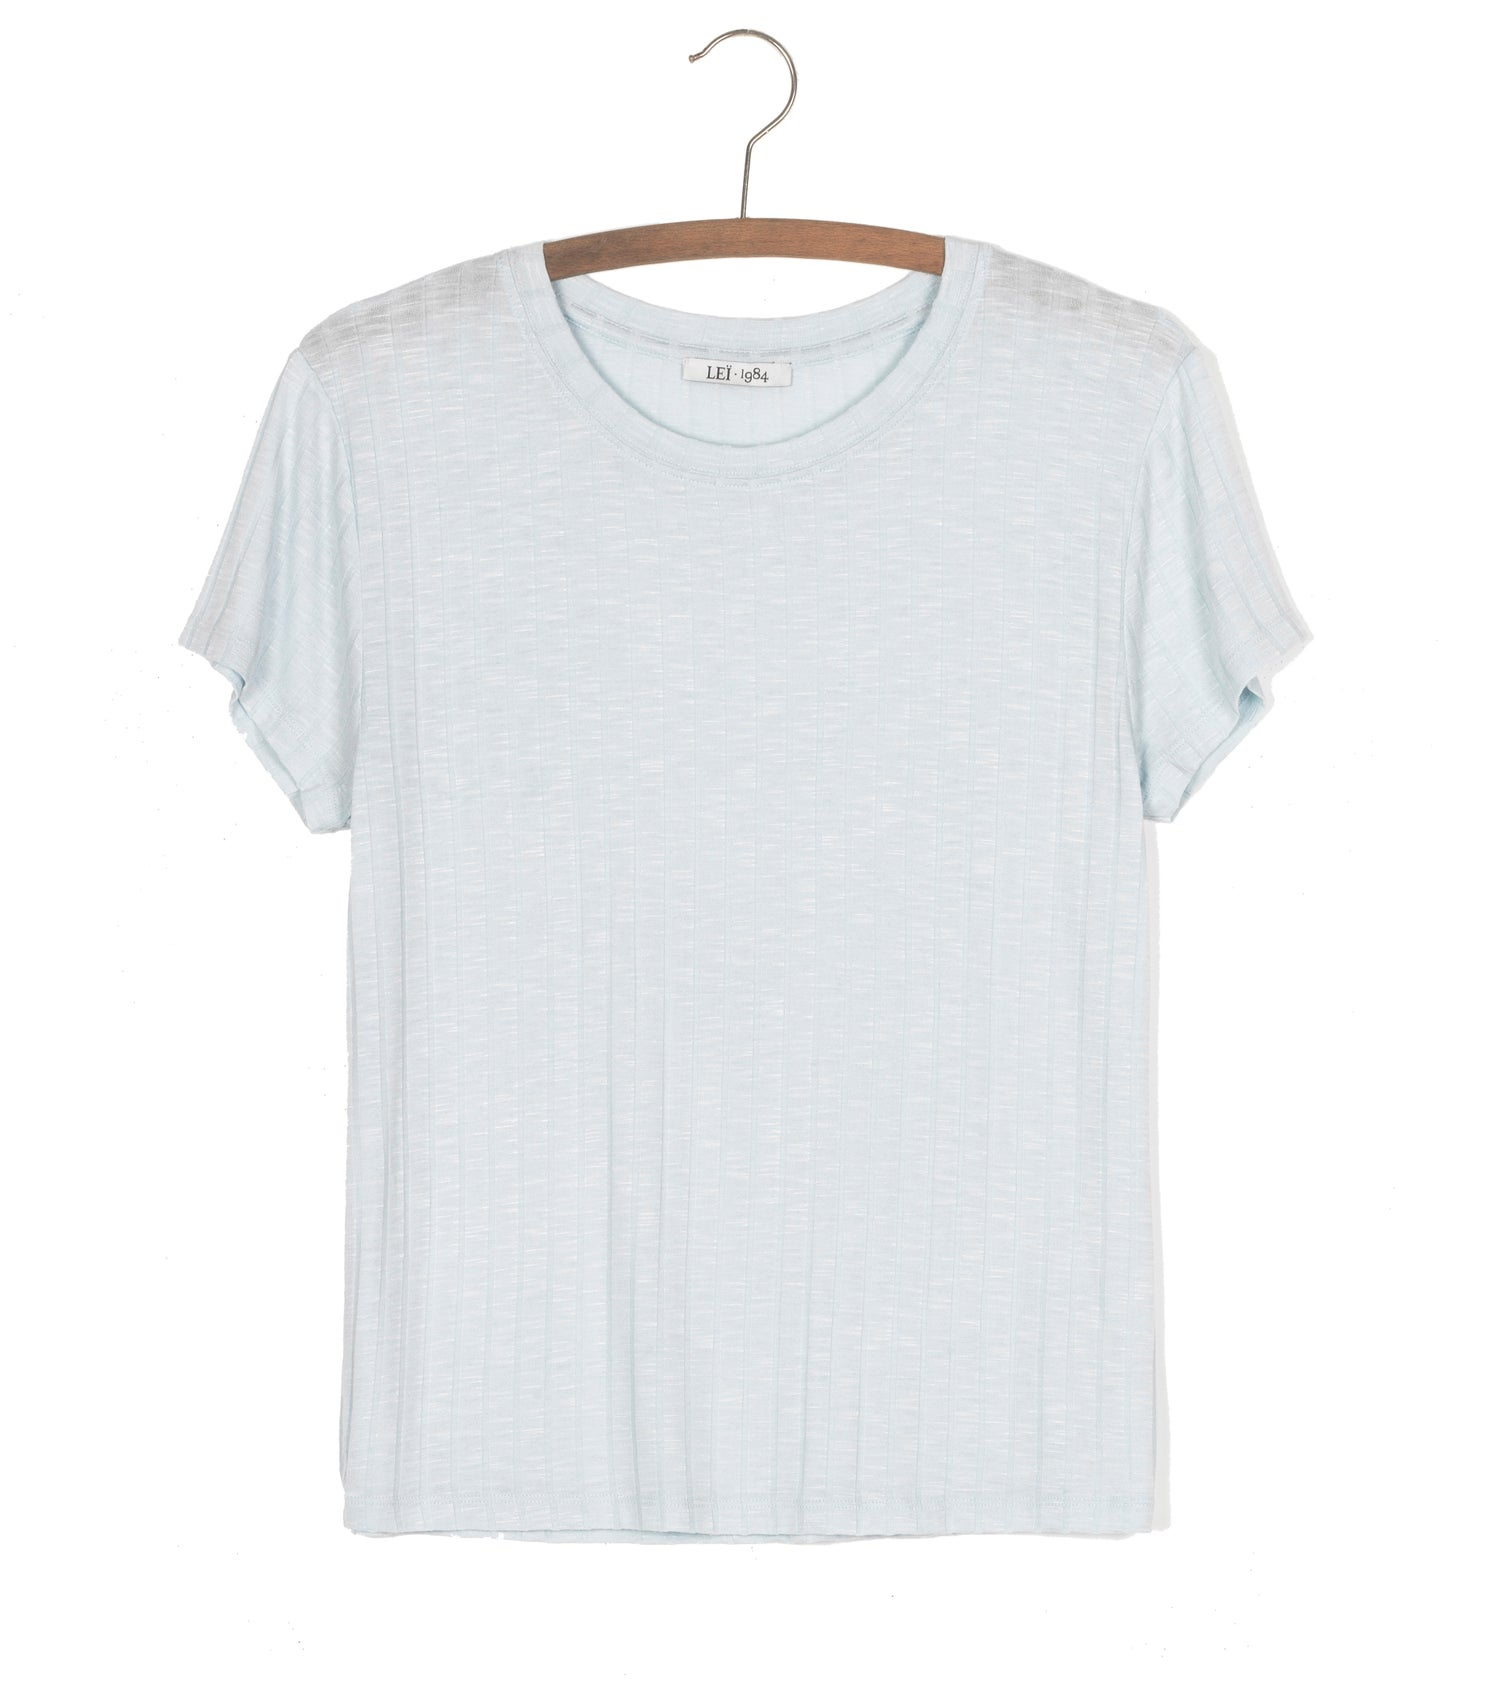 Image of Tee shirt côtes PRUNE 55€ -50%